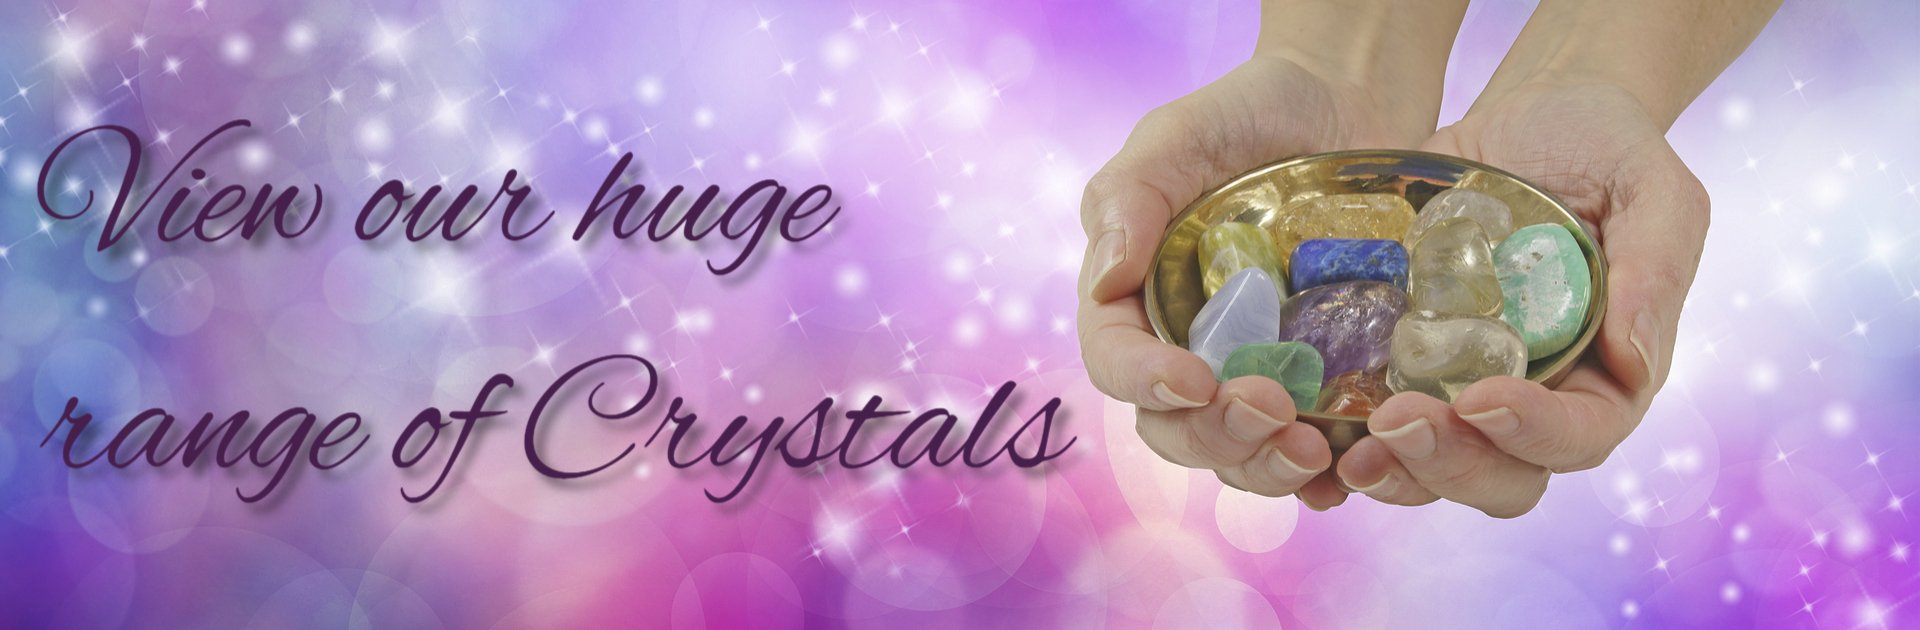 purple_lotus_-ie_new_range_of_crystals